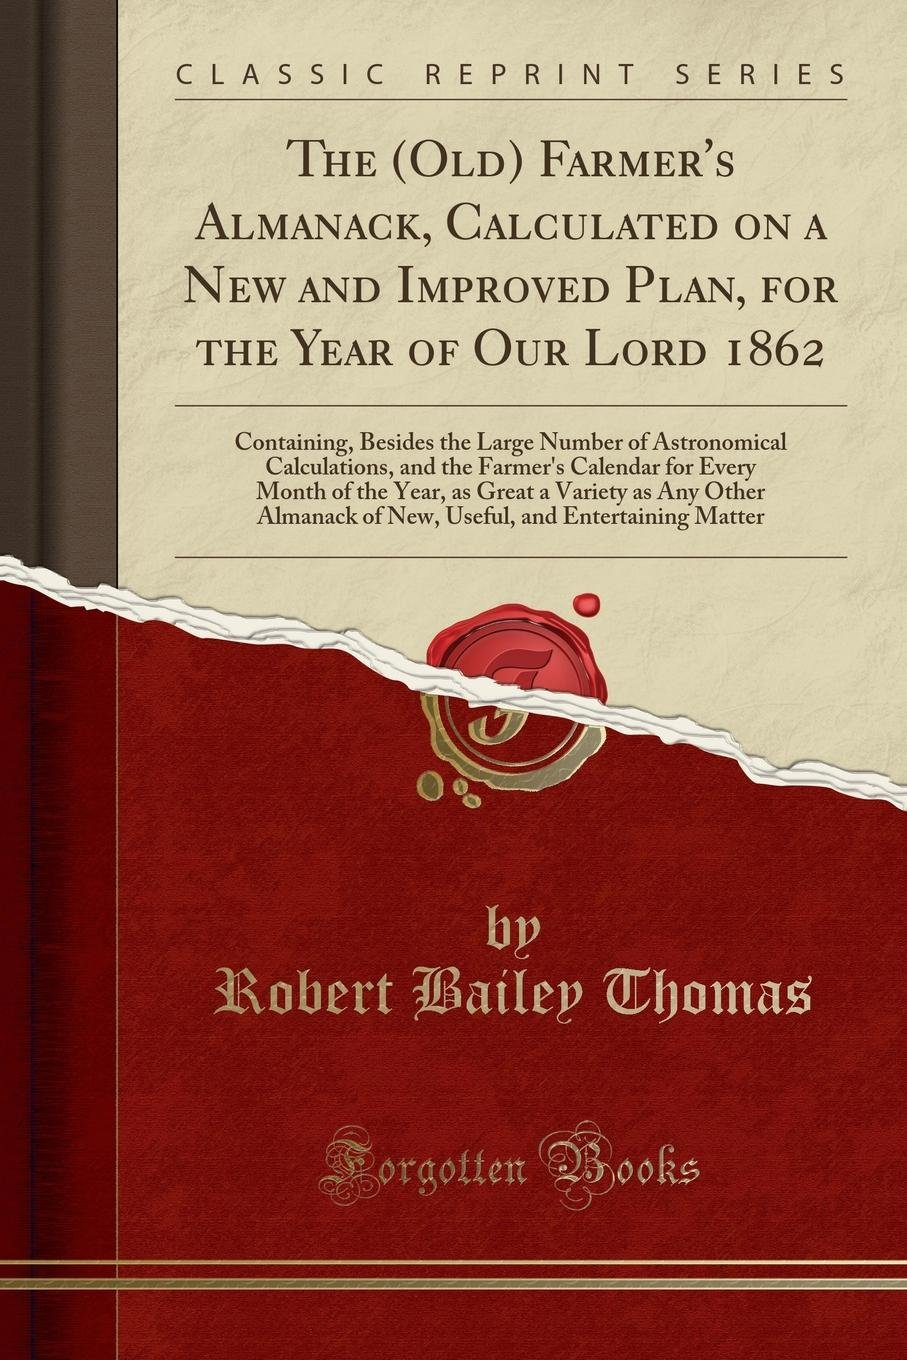 Download The (Old) Farmer's Almanack, Calculated on a New and Improved Plan, for the Year of Our Lord 1862: Containing, Besides the Large Number of ... the Year, as Great a Variety as Any Other Al ebook